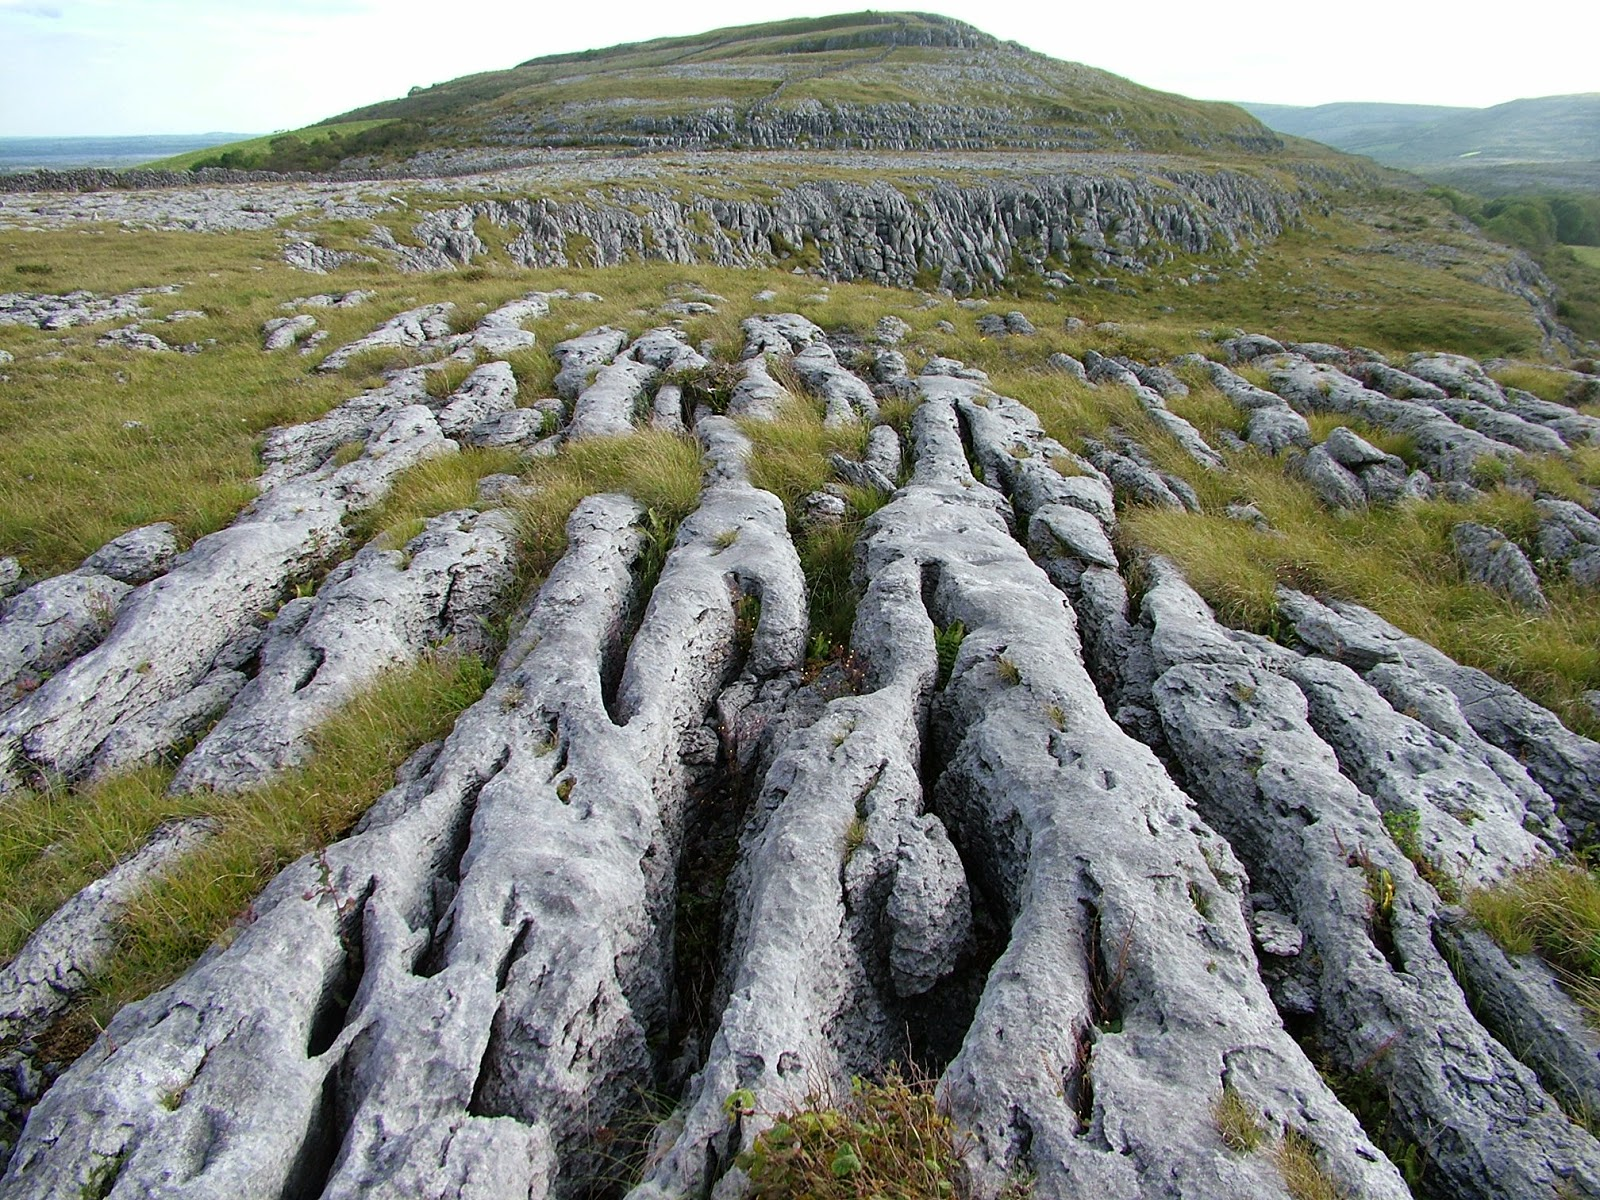 Academic links J.R.R. Tolkien's writings with The Burren